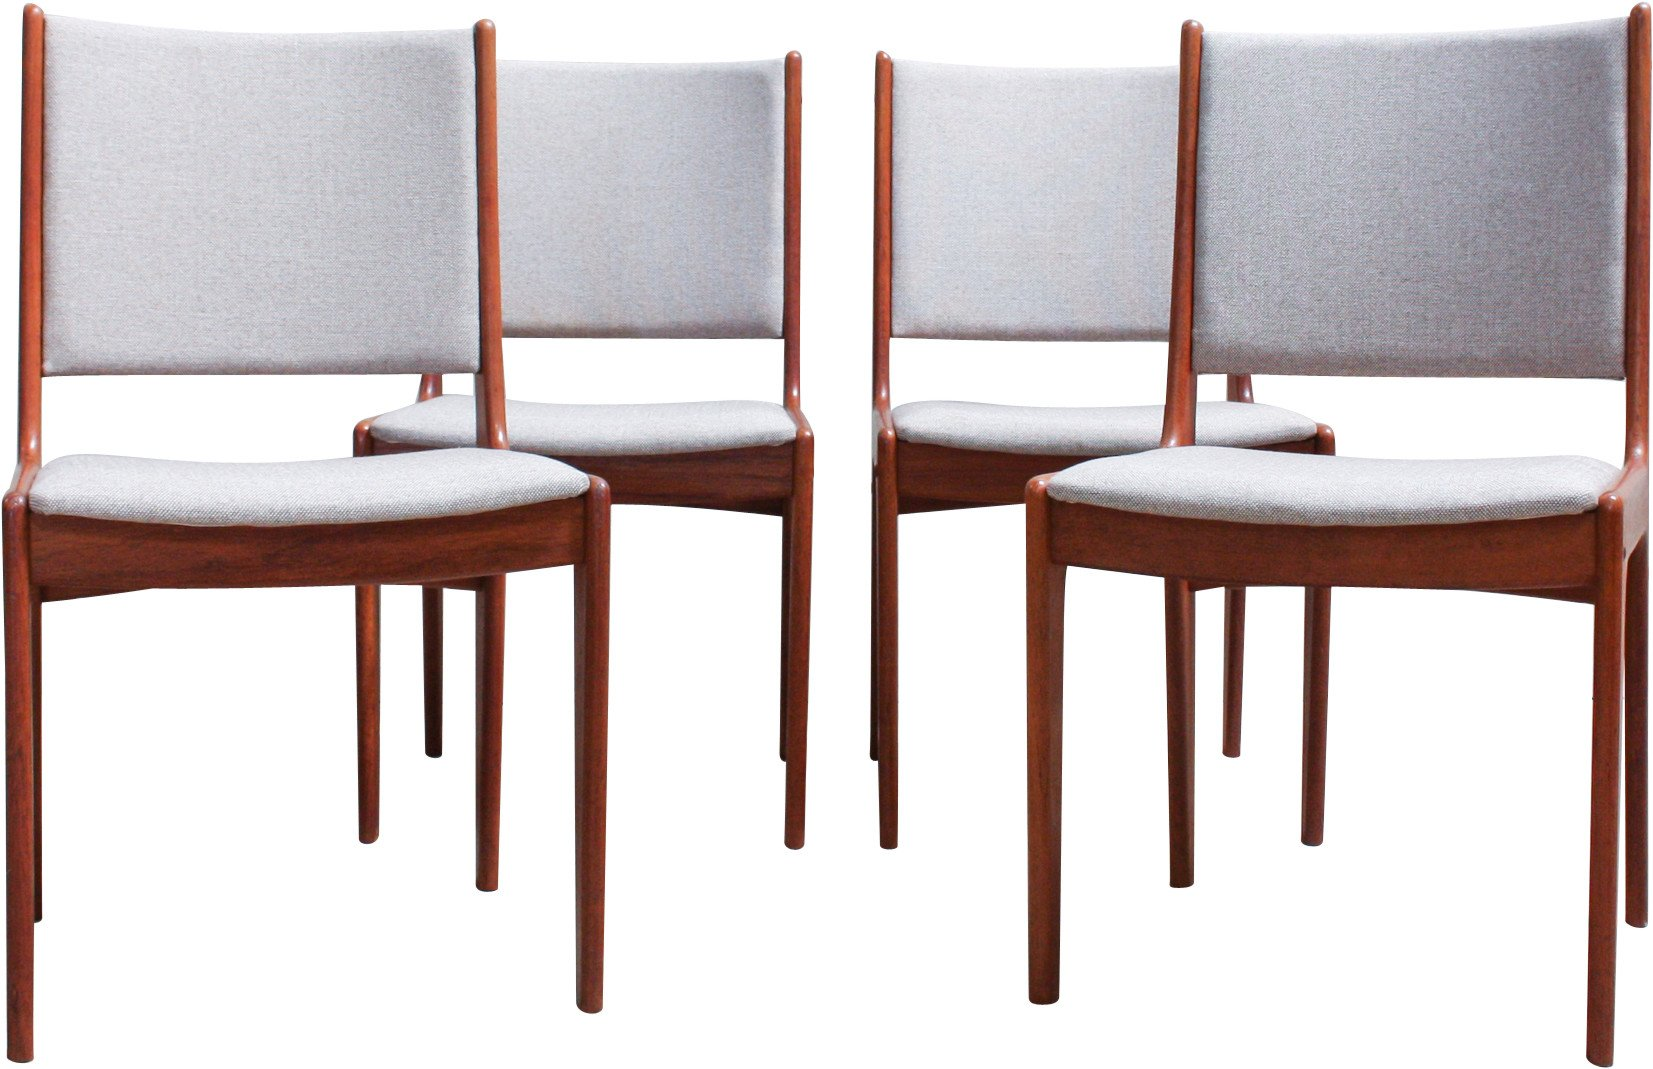 Set of Four Dining Chairs by J. Andersen for Uldum Møbelfabrik, 1960s